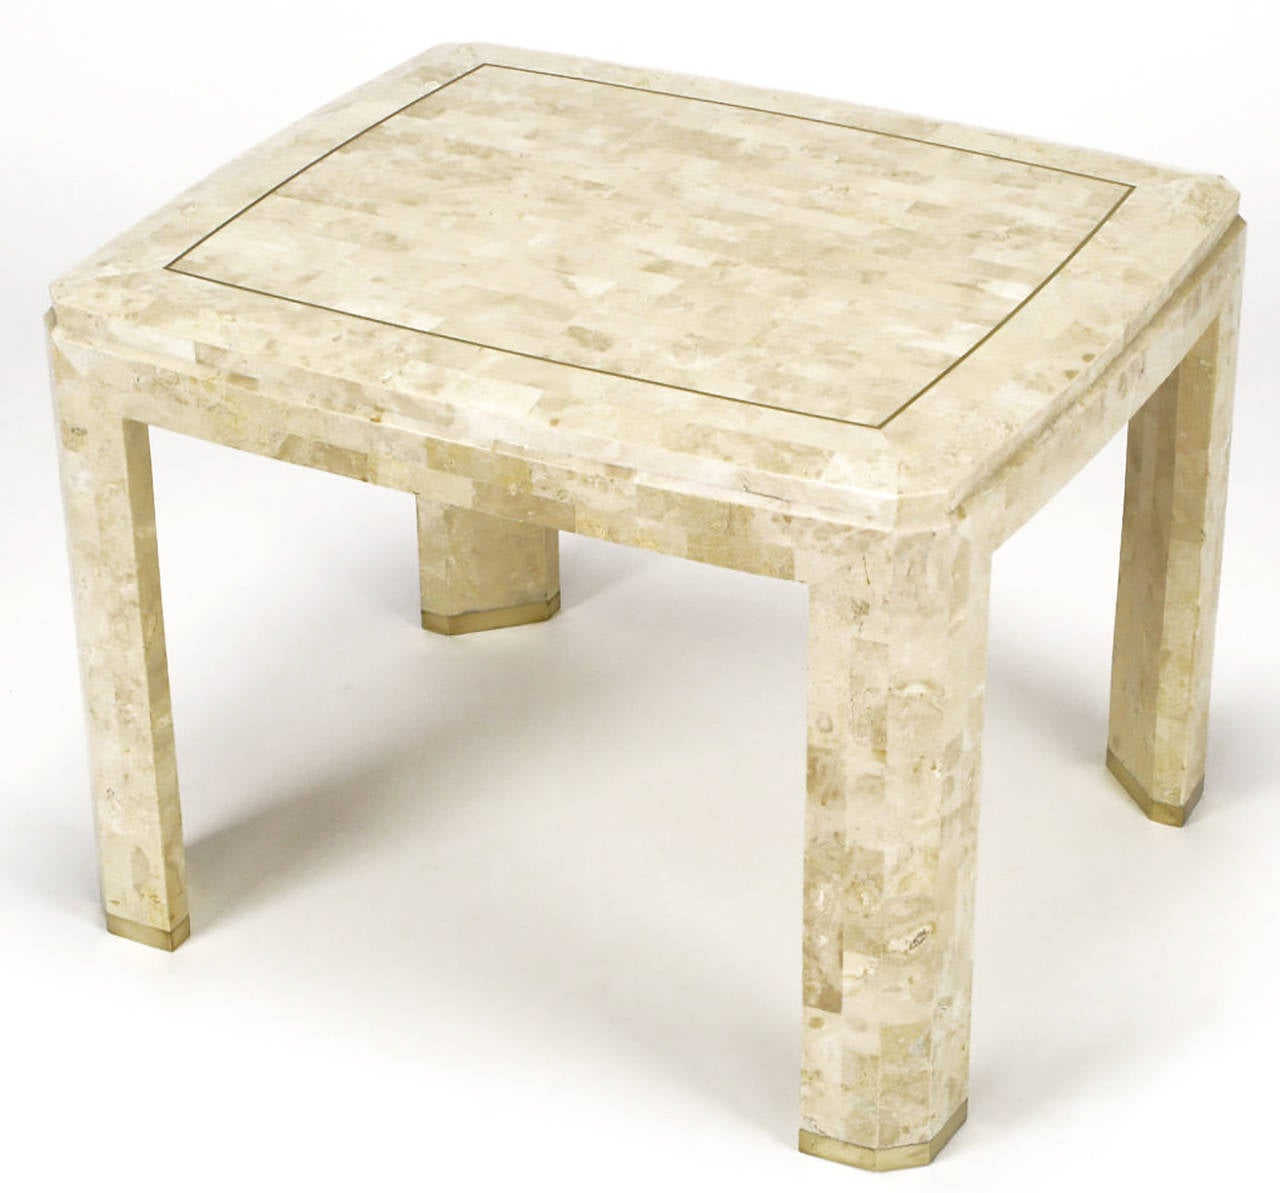 Merveilleux Tessellated Fossil Stone End Table With A Stepped And Beveled Edge Top With  Inlaid Brass Border